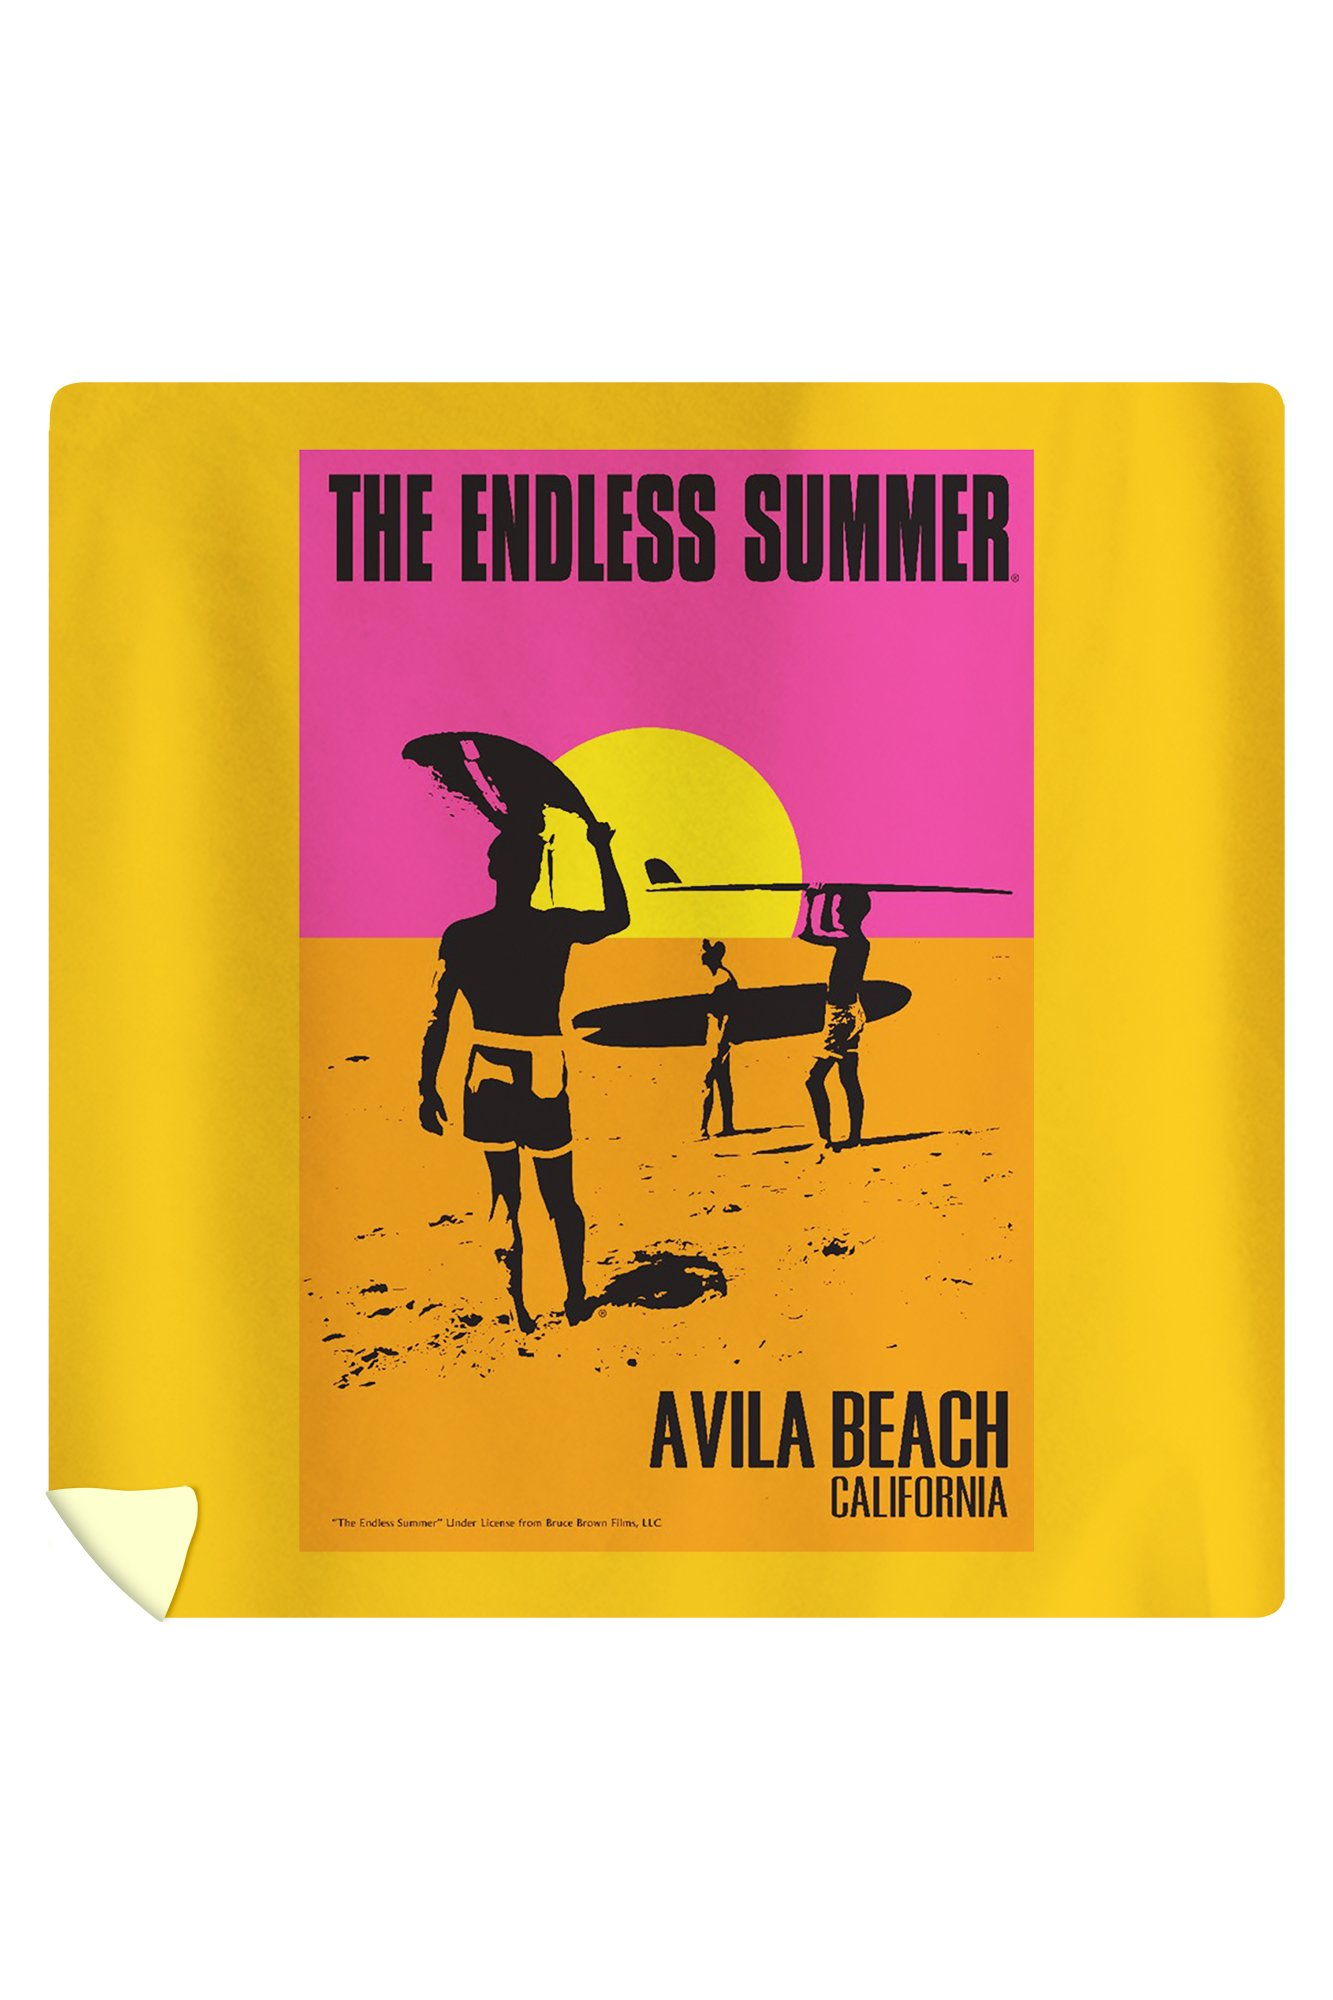 Avila Beach, California - The Endless Summer - Original Movie Poster (88x88 Queen Microfiber Duvet Cover)